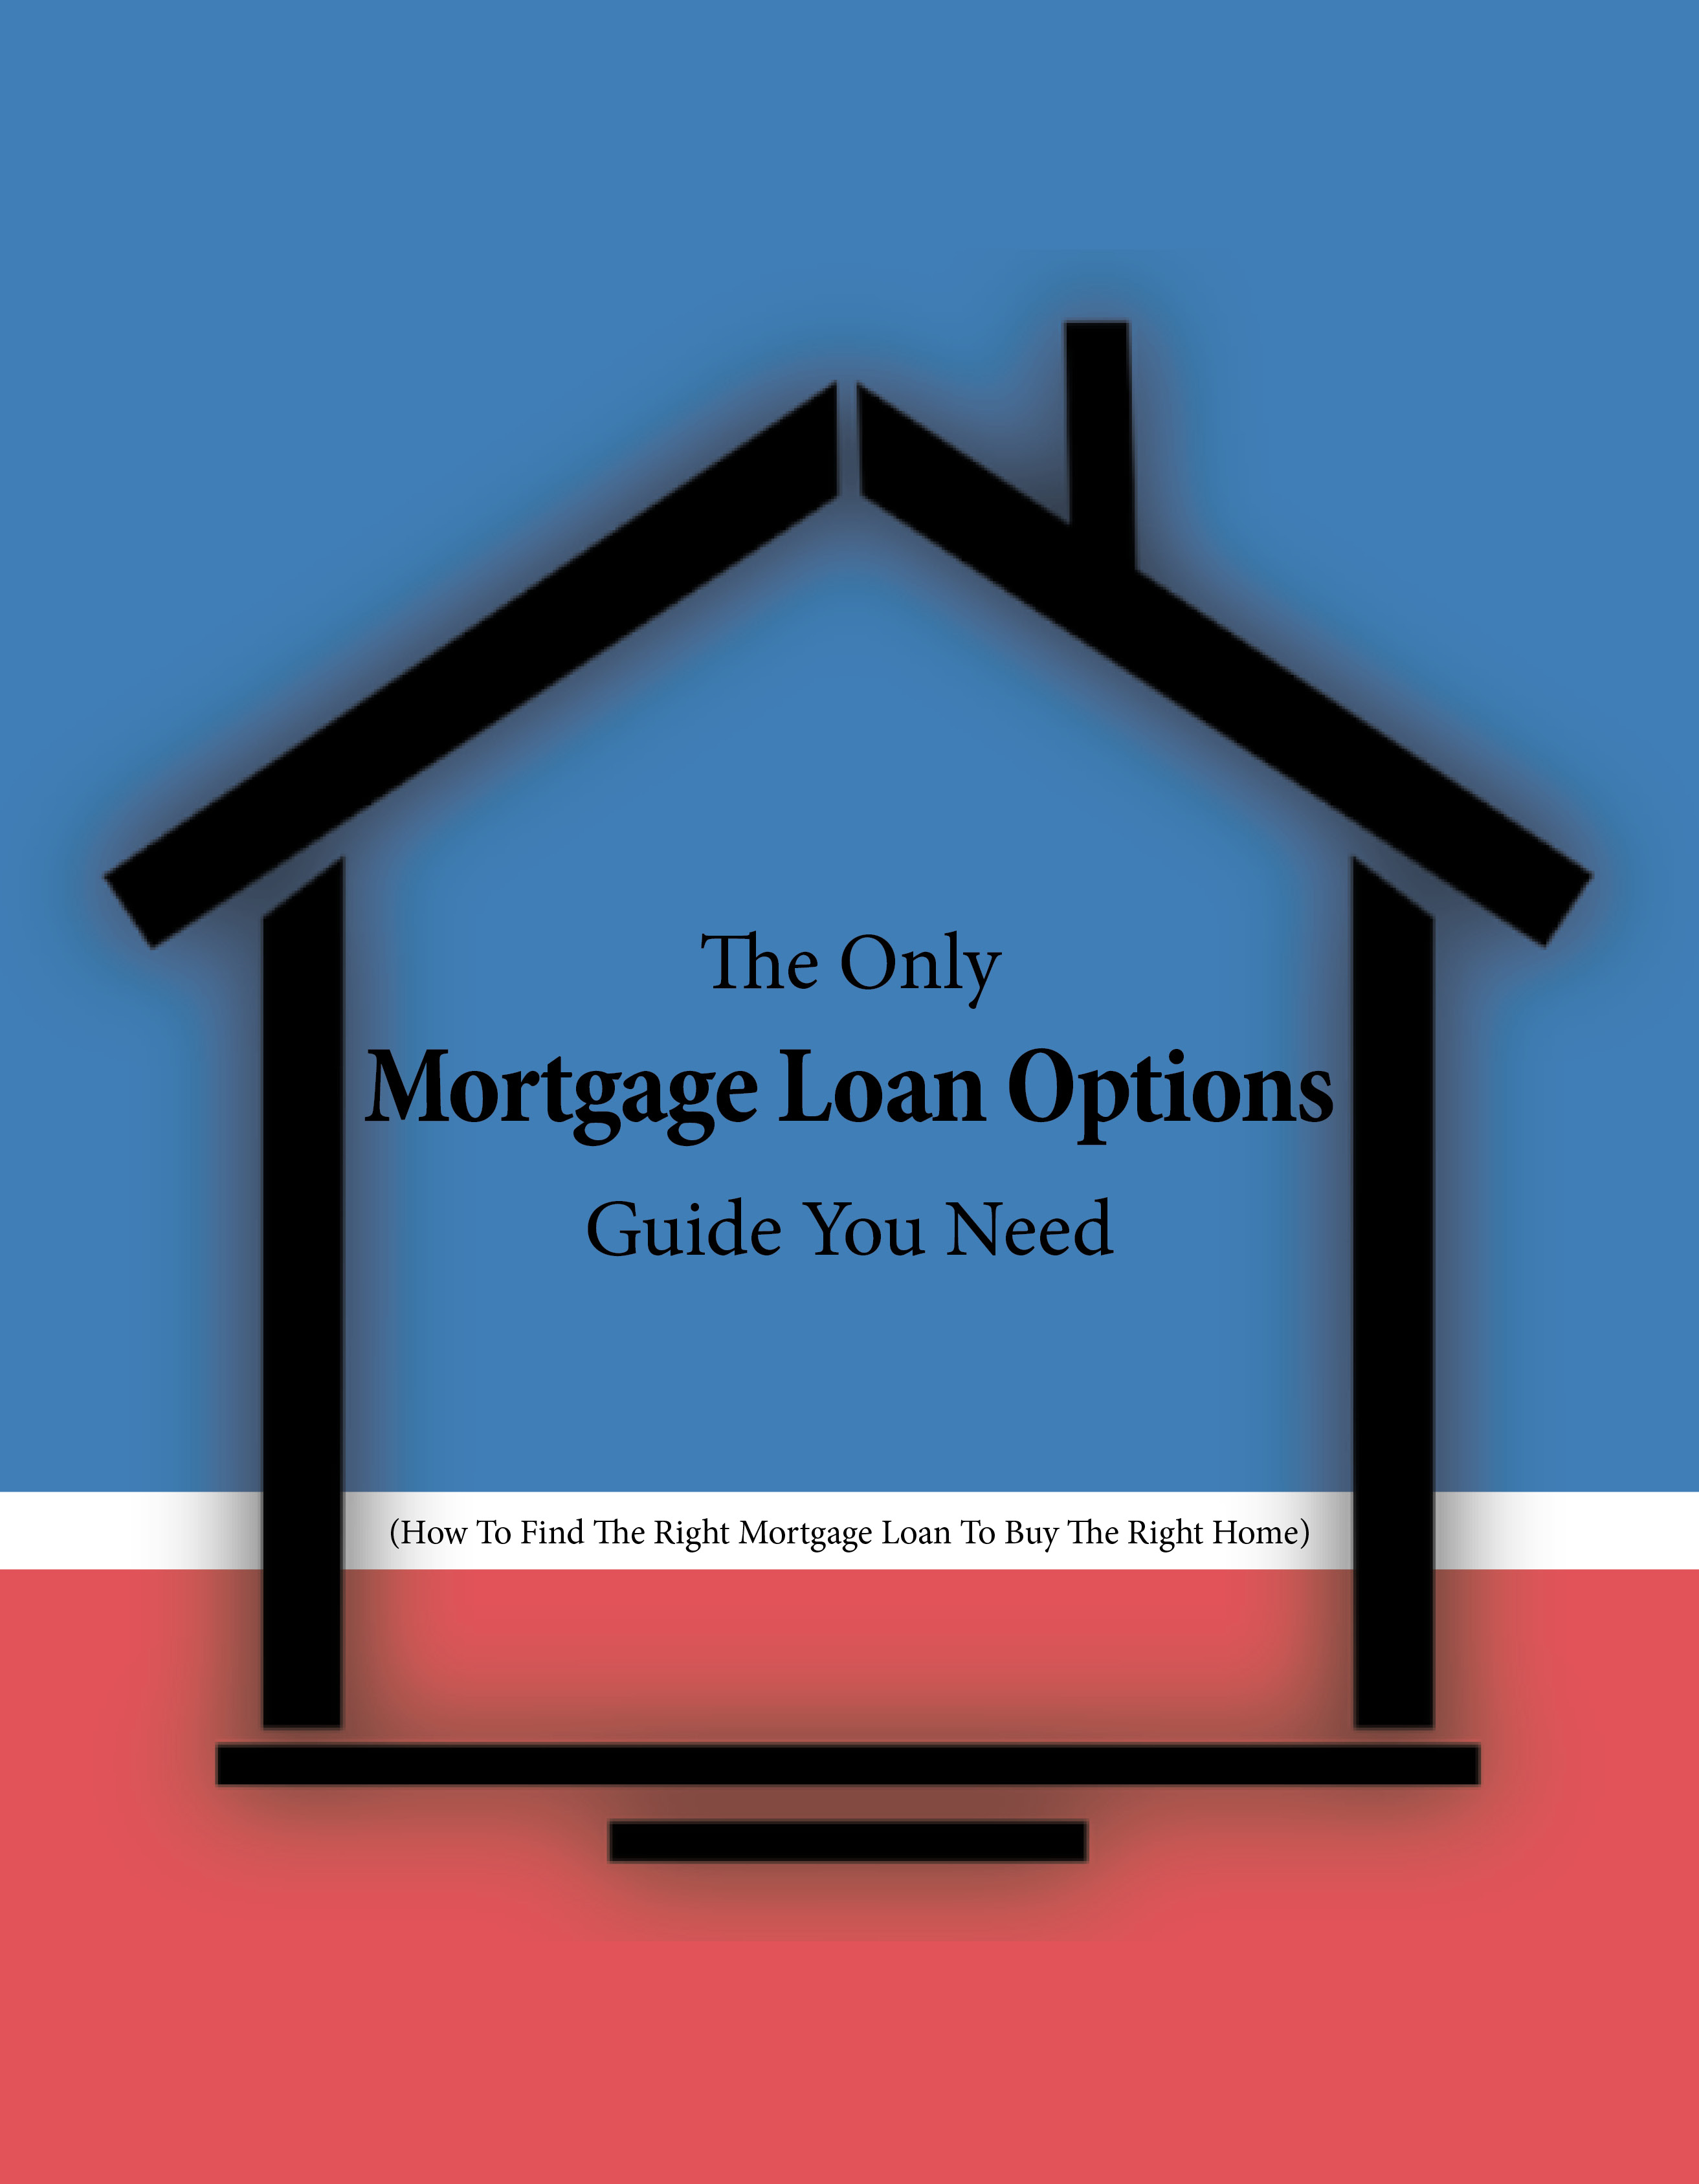 Download The Mortgage Loan Options Guide Home Improvement Loans Remodeling Loans Home Improvement